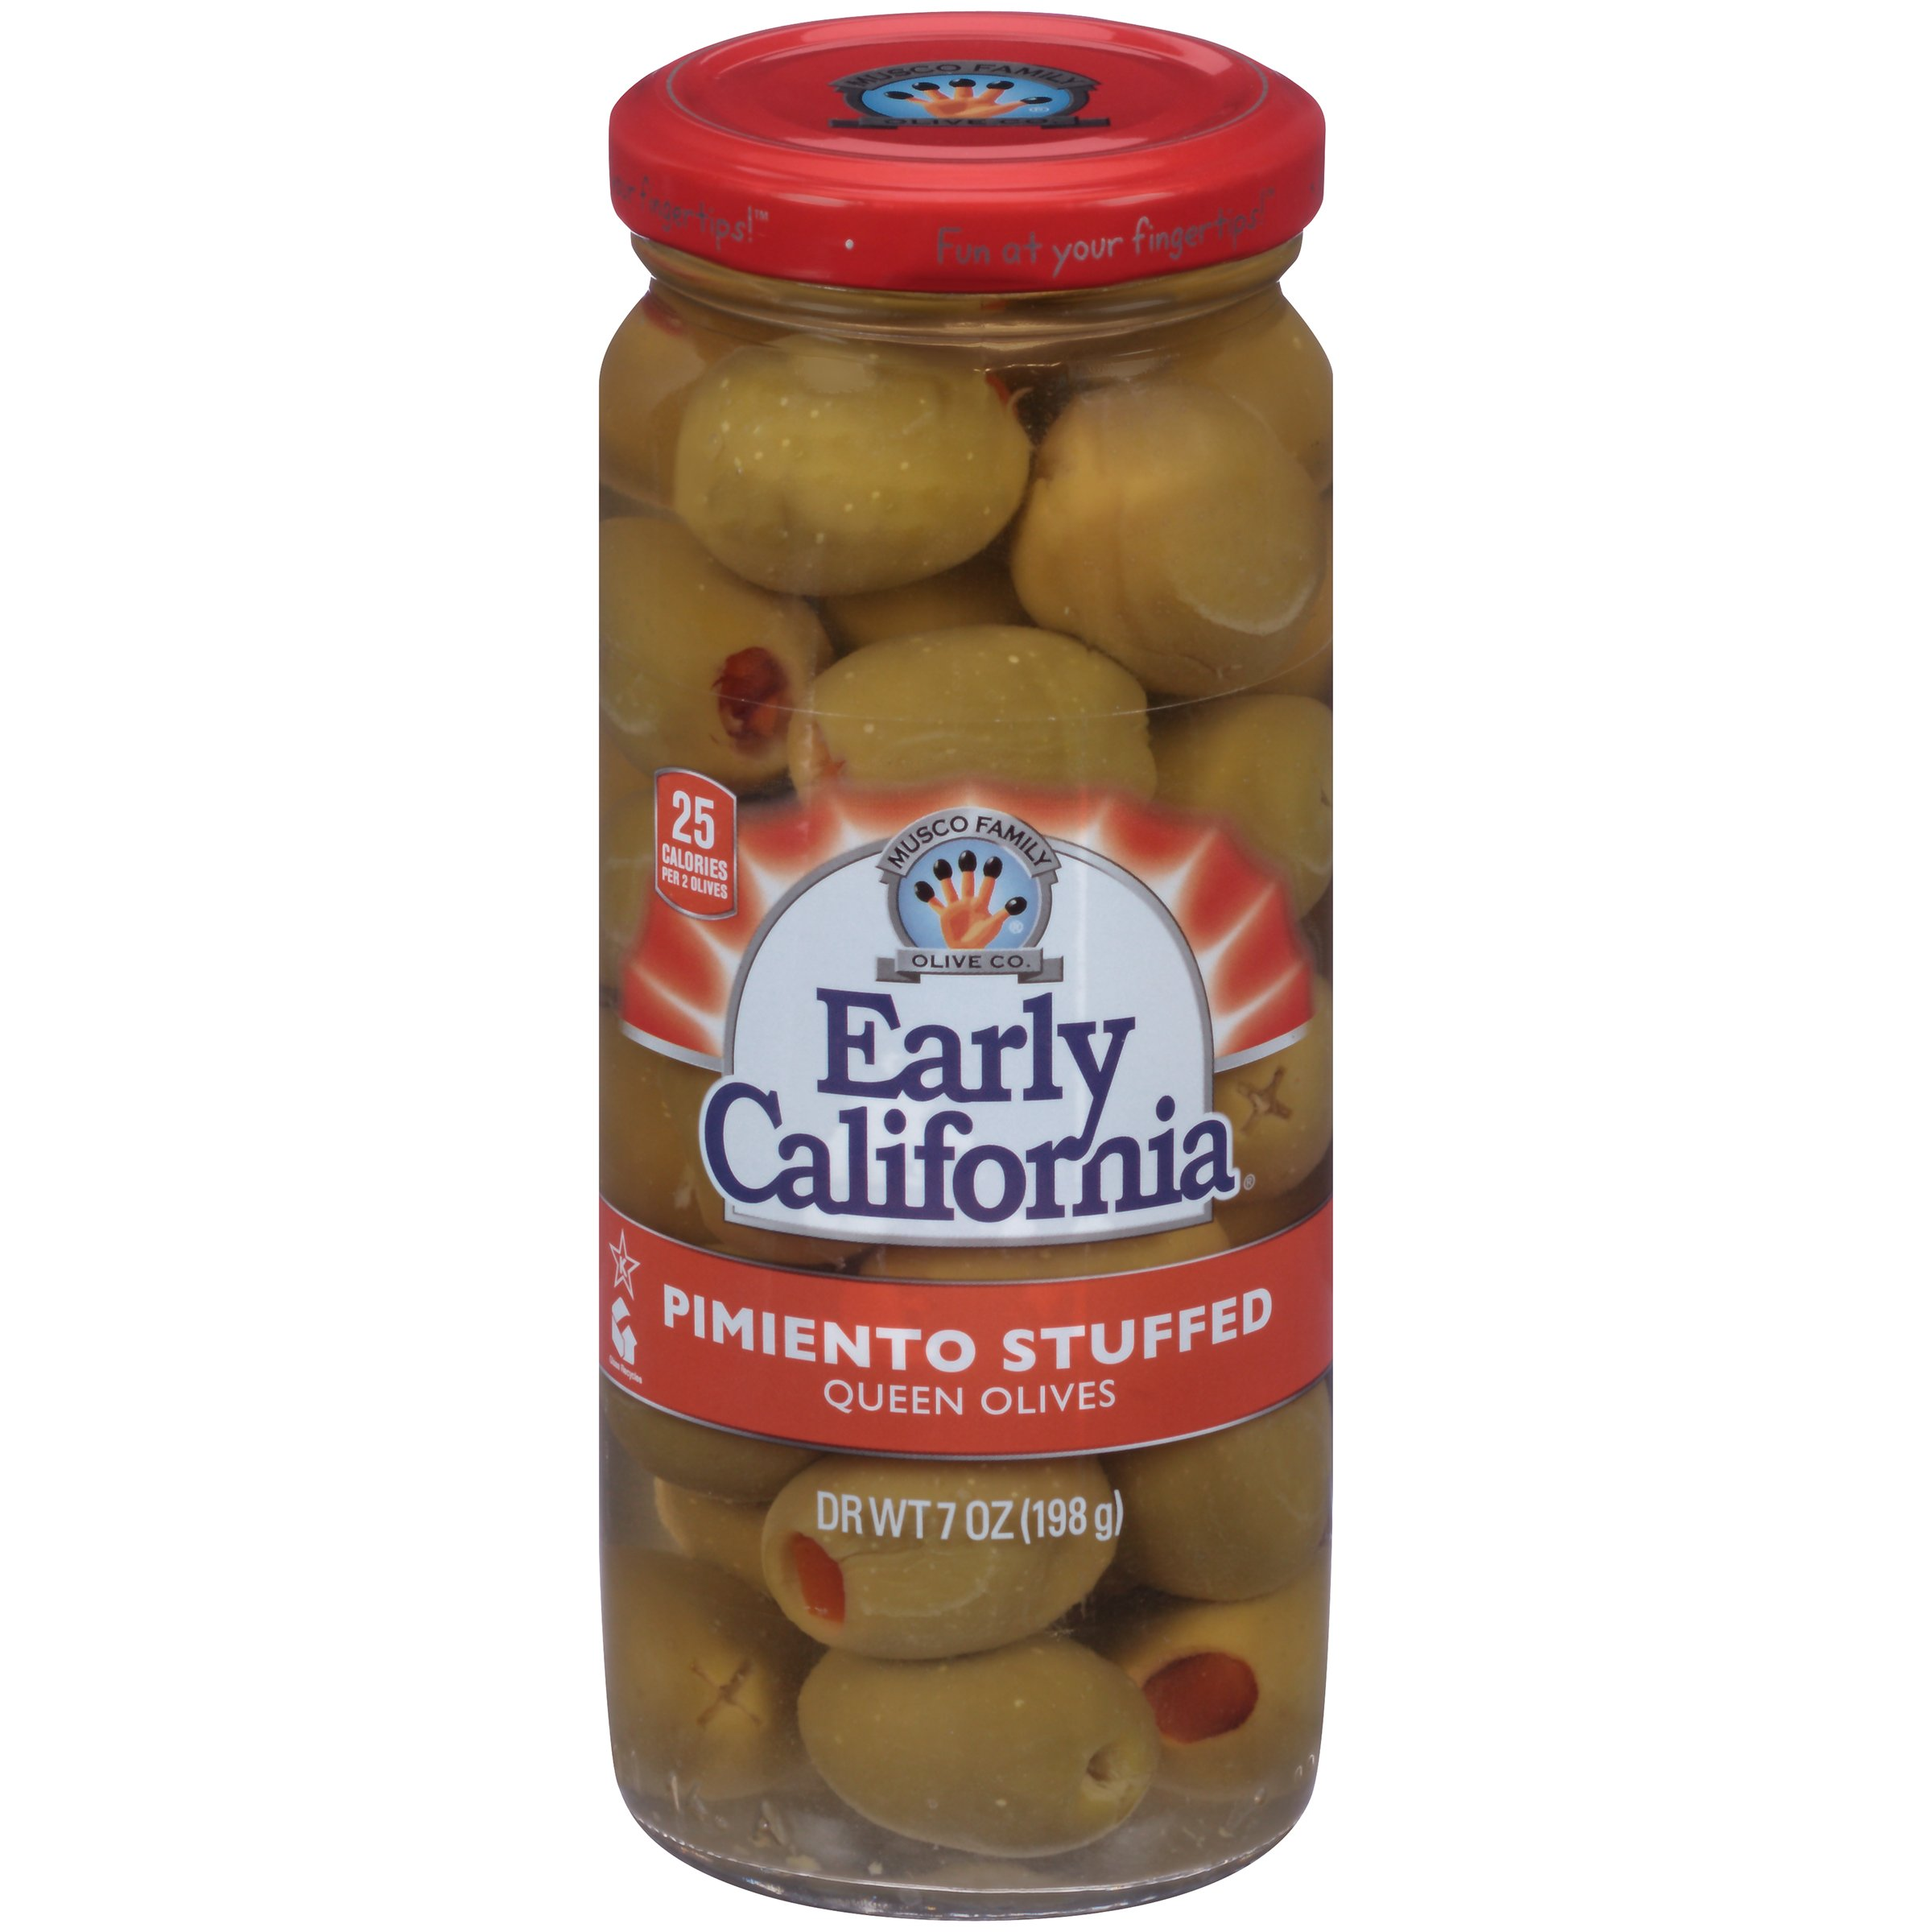 Early California (6) 7oz Pimiento Stuffed Queen Olives